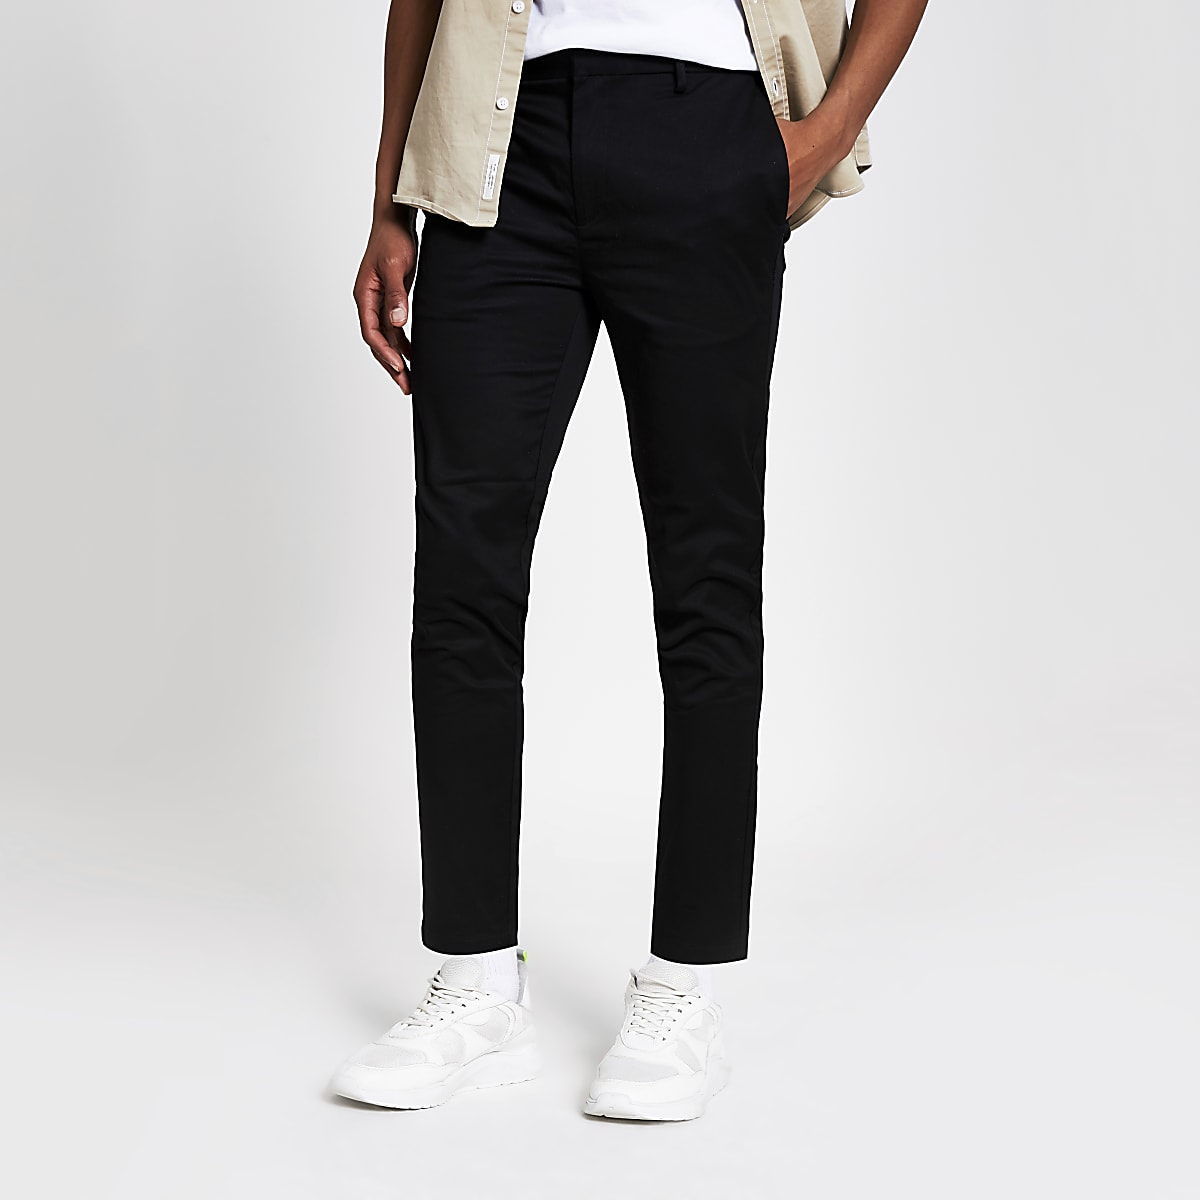 Black side tape skinny trousers